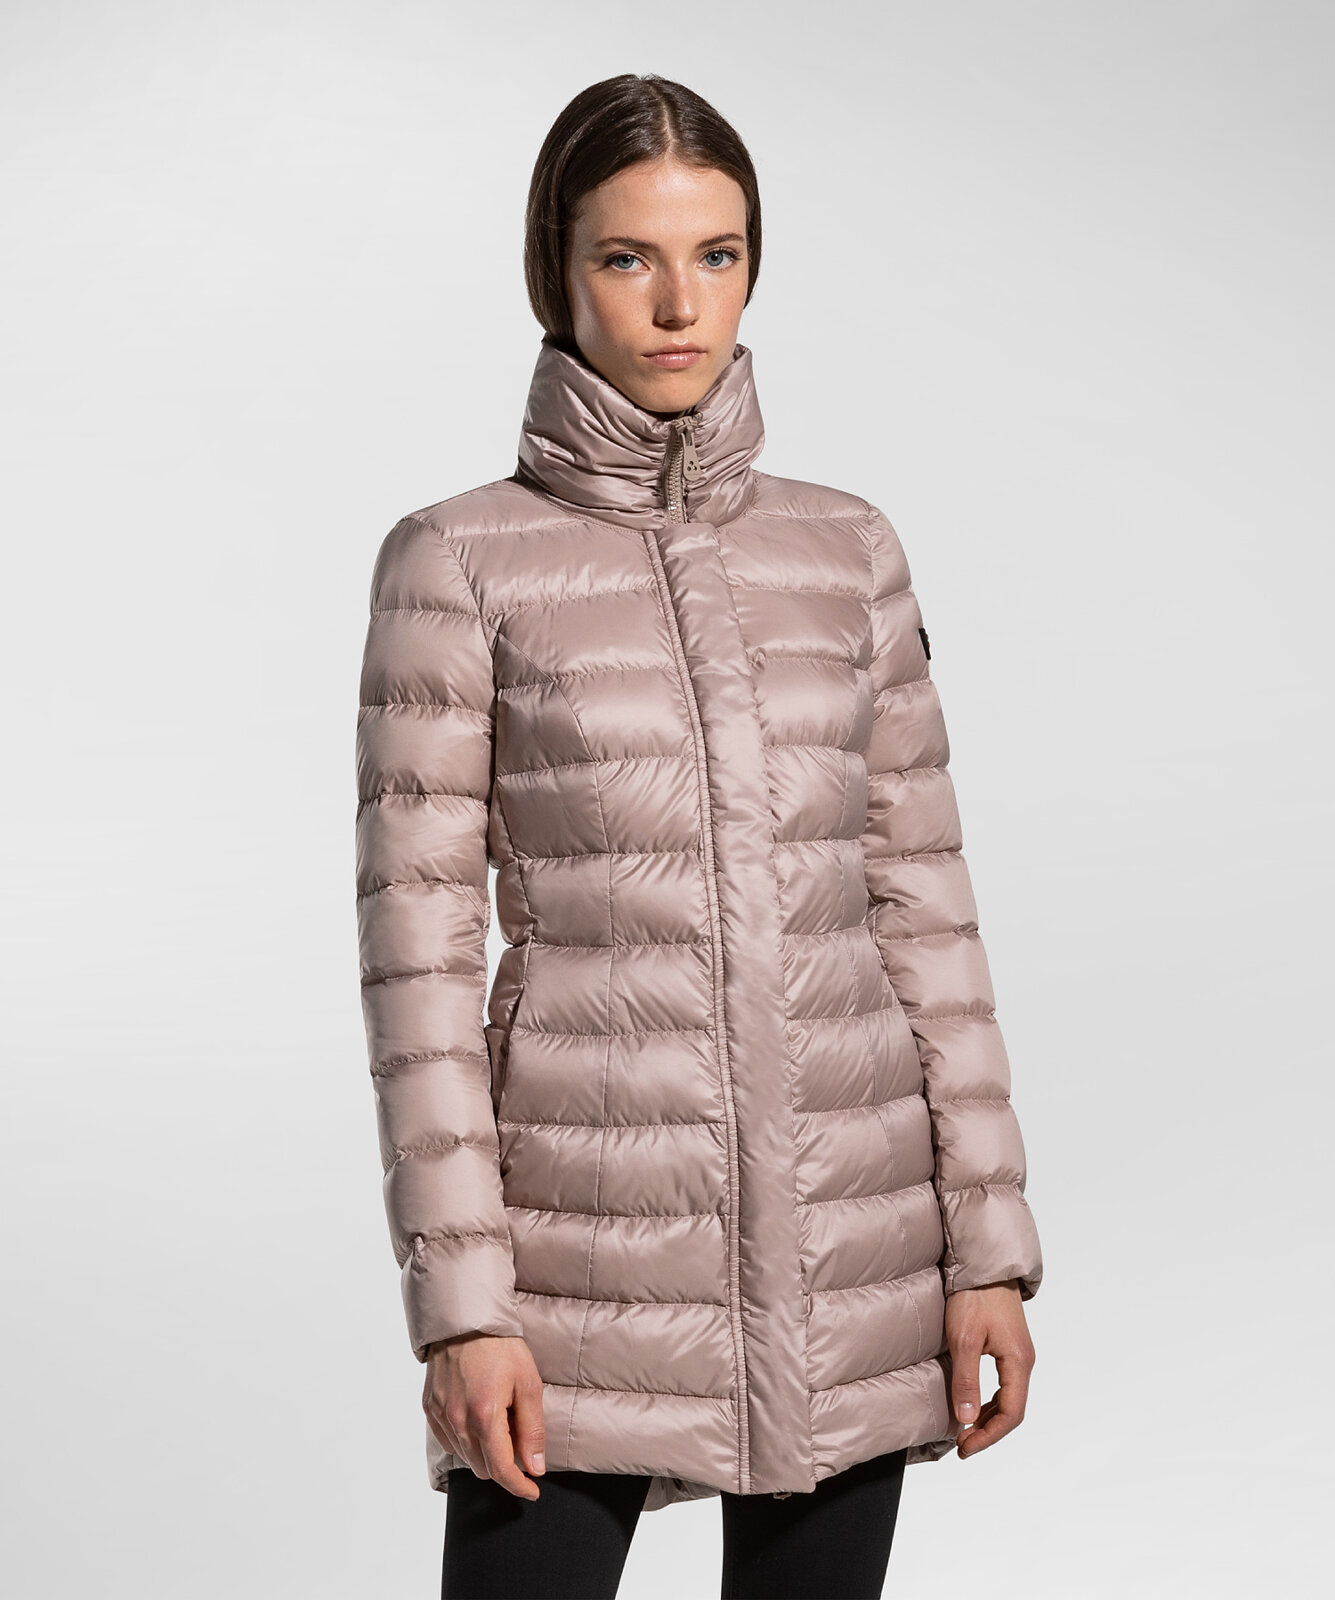 Down Jacket With High Collar - Peuterey